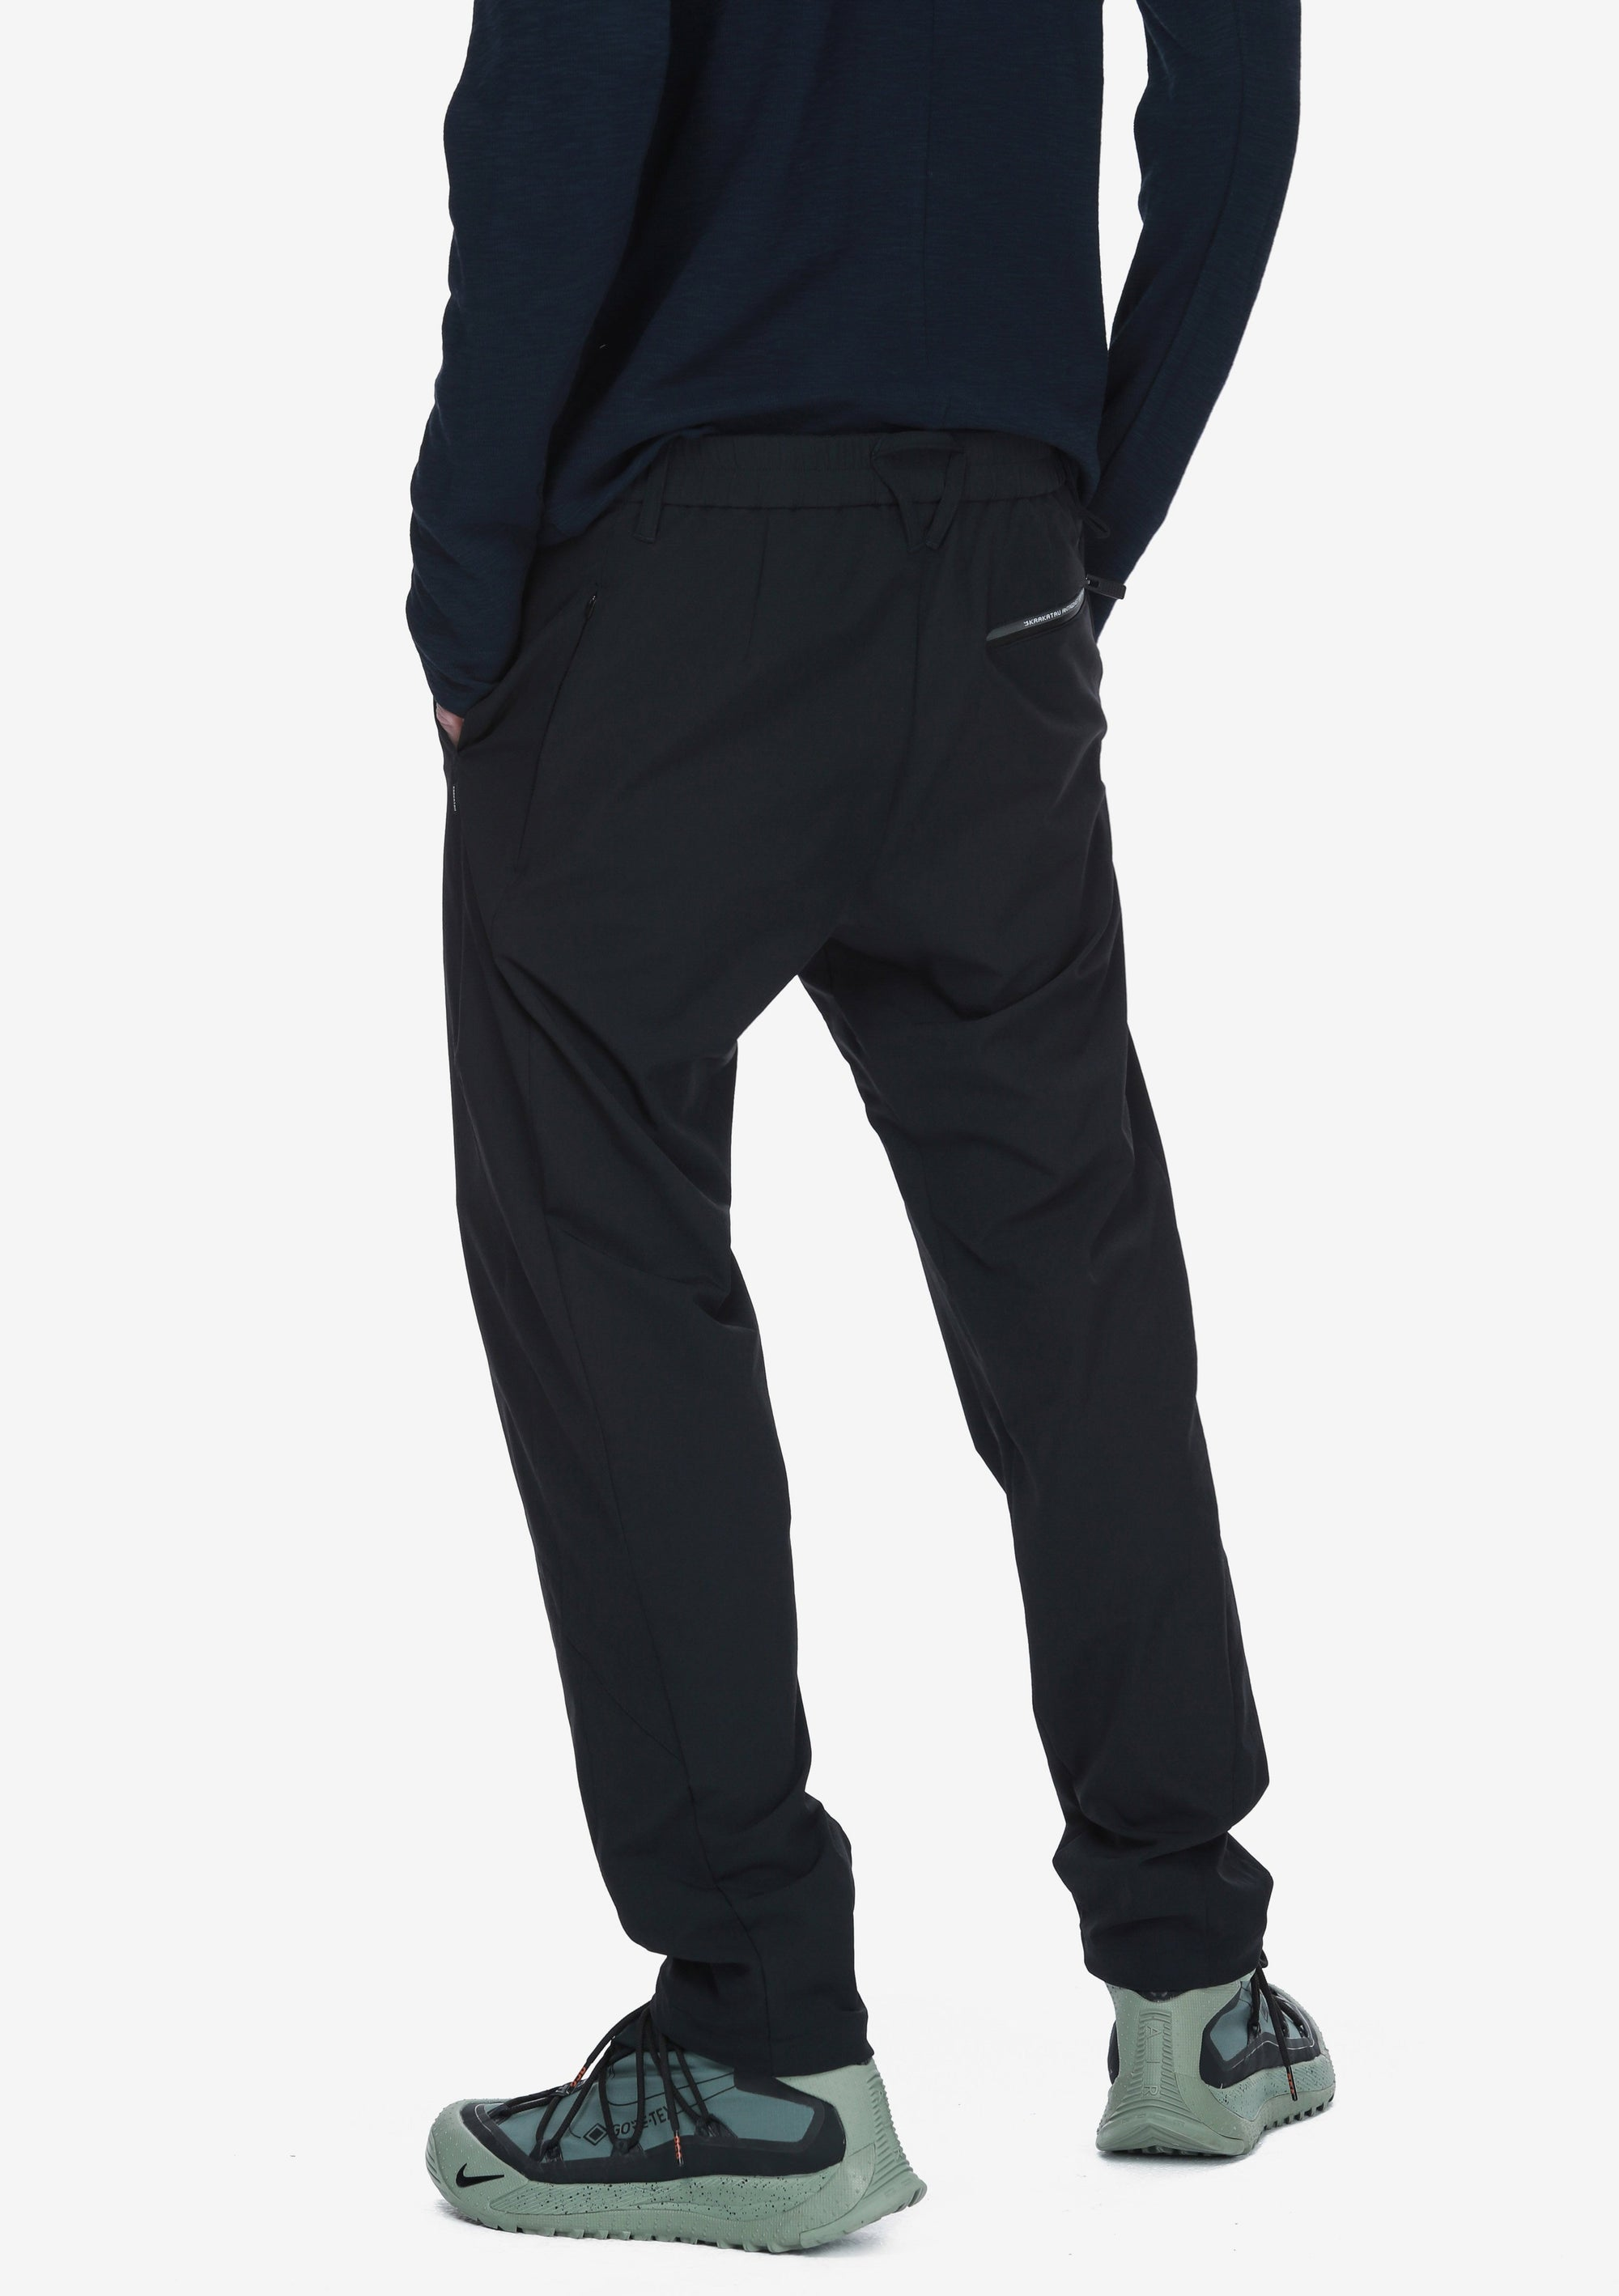 Stretchy Jersey Straight Pants Rm109-61 APEX